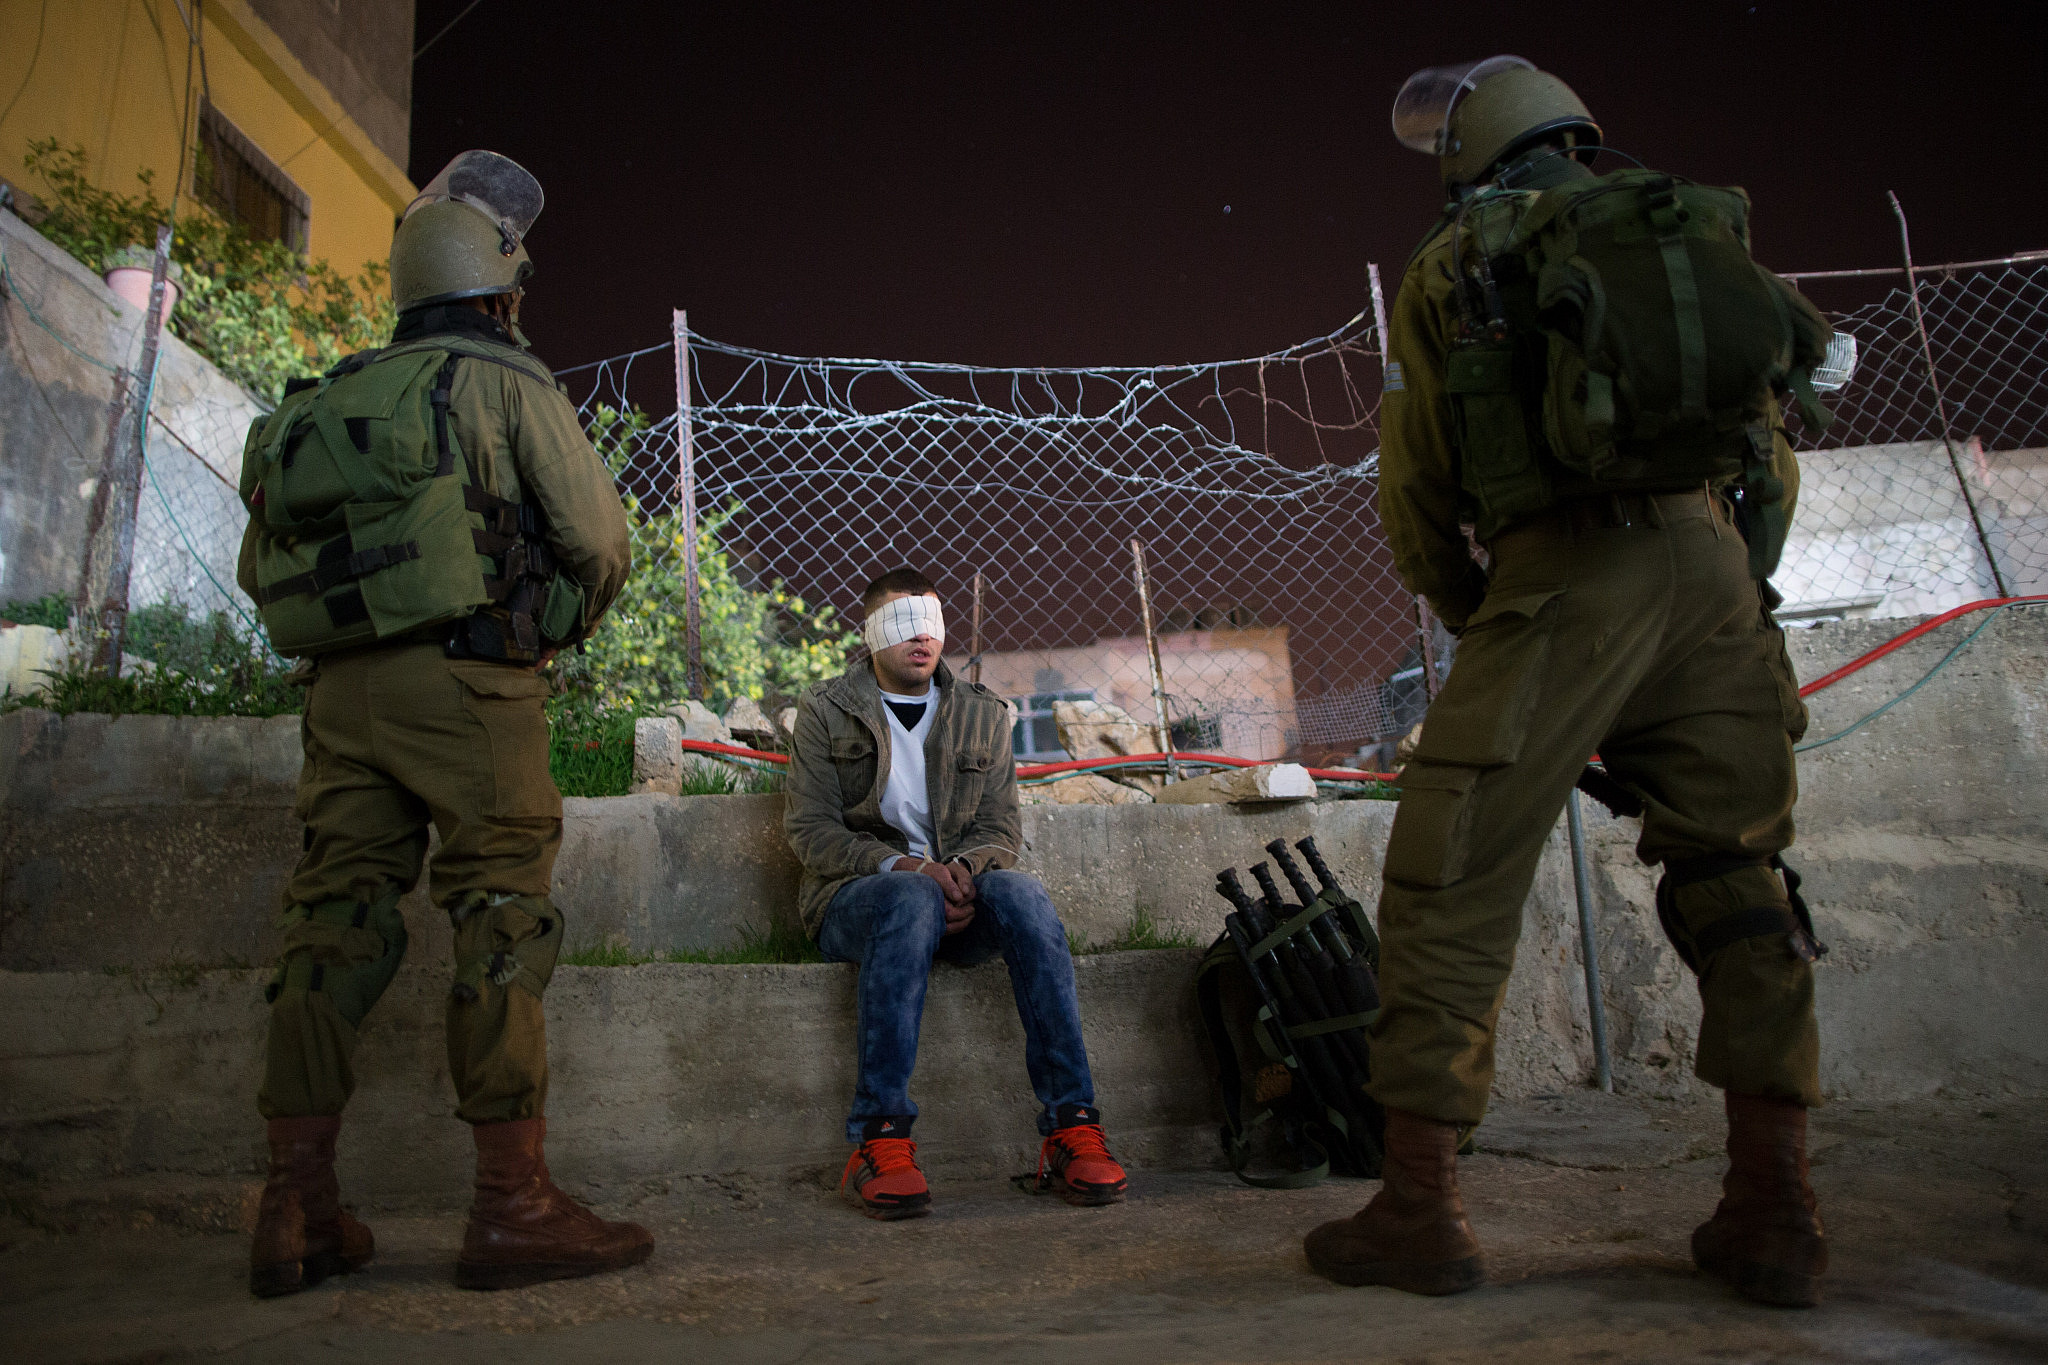 Nachshon Battalion soldiers watch over a Palestinian detainee during an operation of arresting suspects in the Dheisheh Refugee Camp, near the West Bank city of Bethlehem, on December 8, 2015. (Nati Shohat/Flash90)